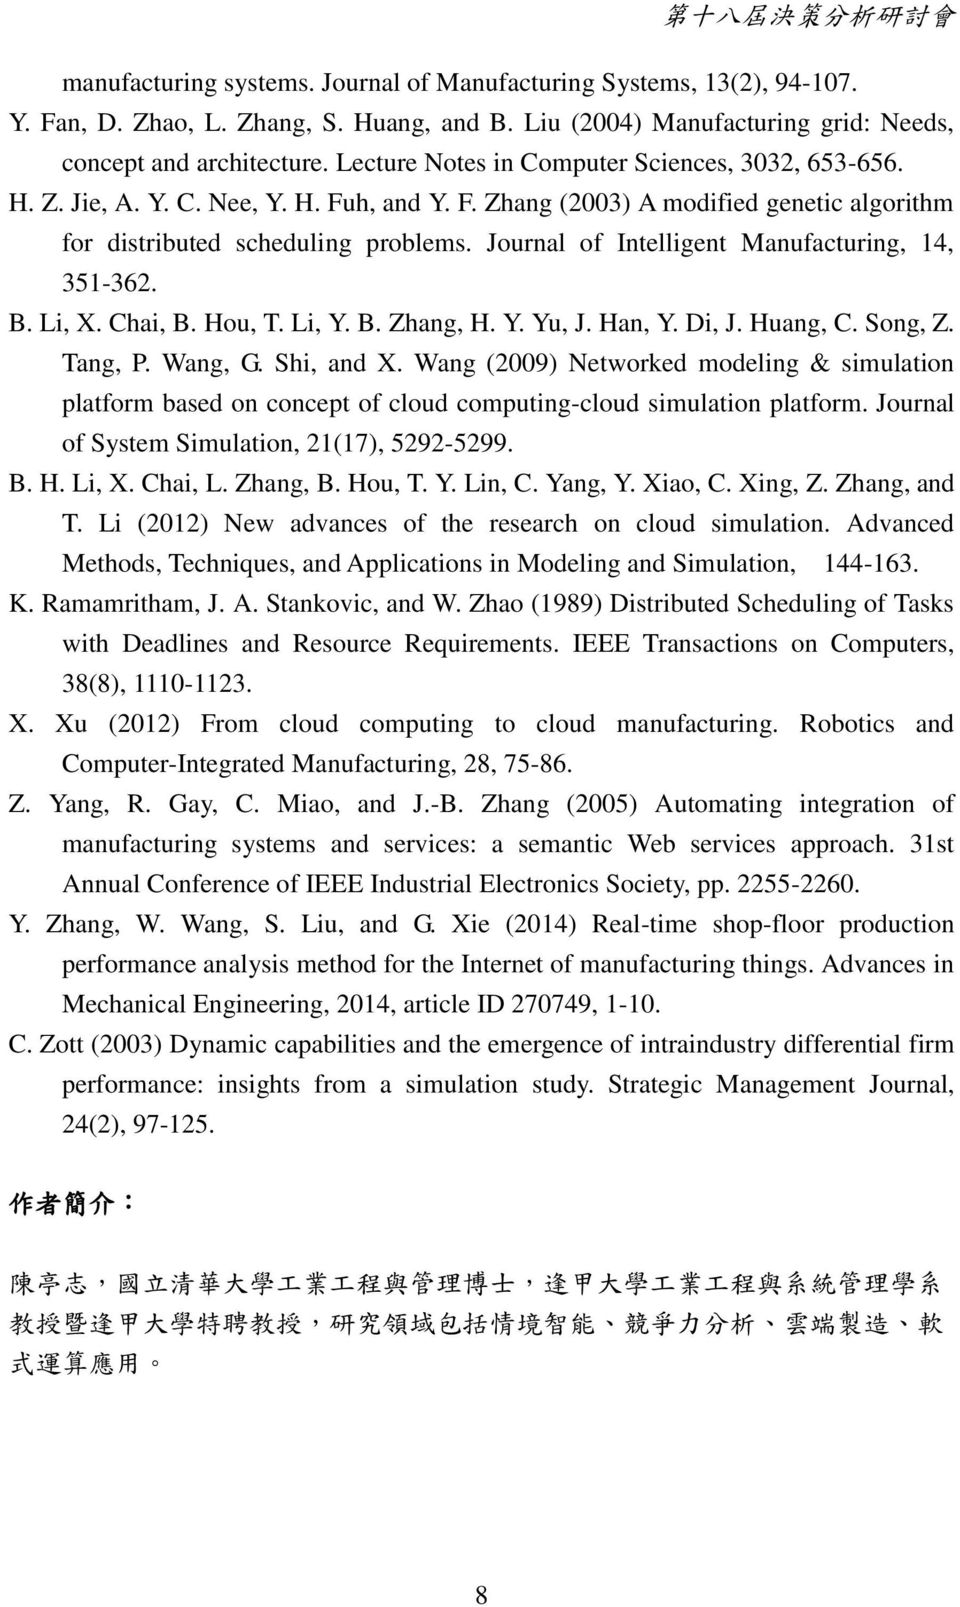 Journal of Intelligent Manufacturing, 14, 351-362. B. Li, X. Chai, B. Hou, T. Li, Y. B. Zhang, H. Y. Yu, J. Han, Y. Di, J. Huang, C. Song, Z. Tang, P. Wang, G. Shi, and X.